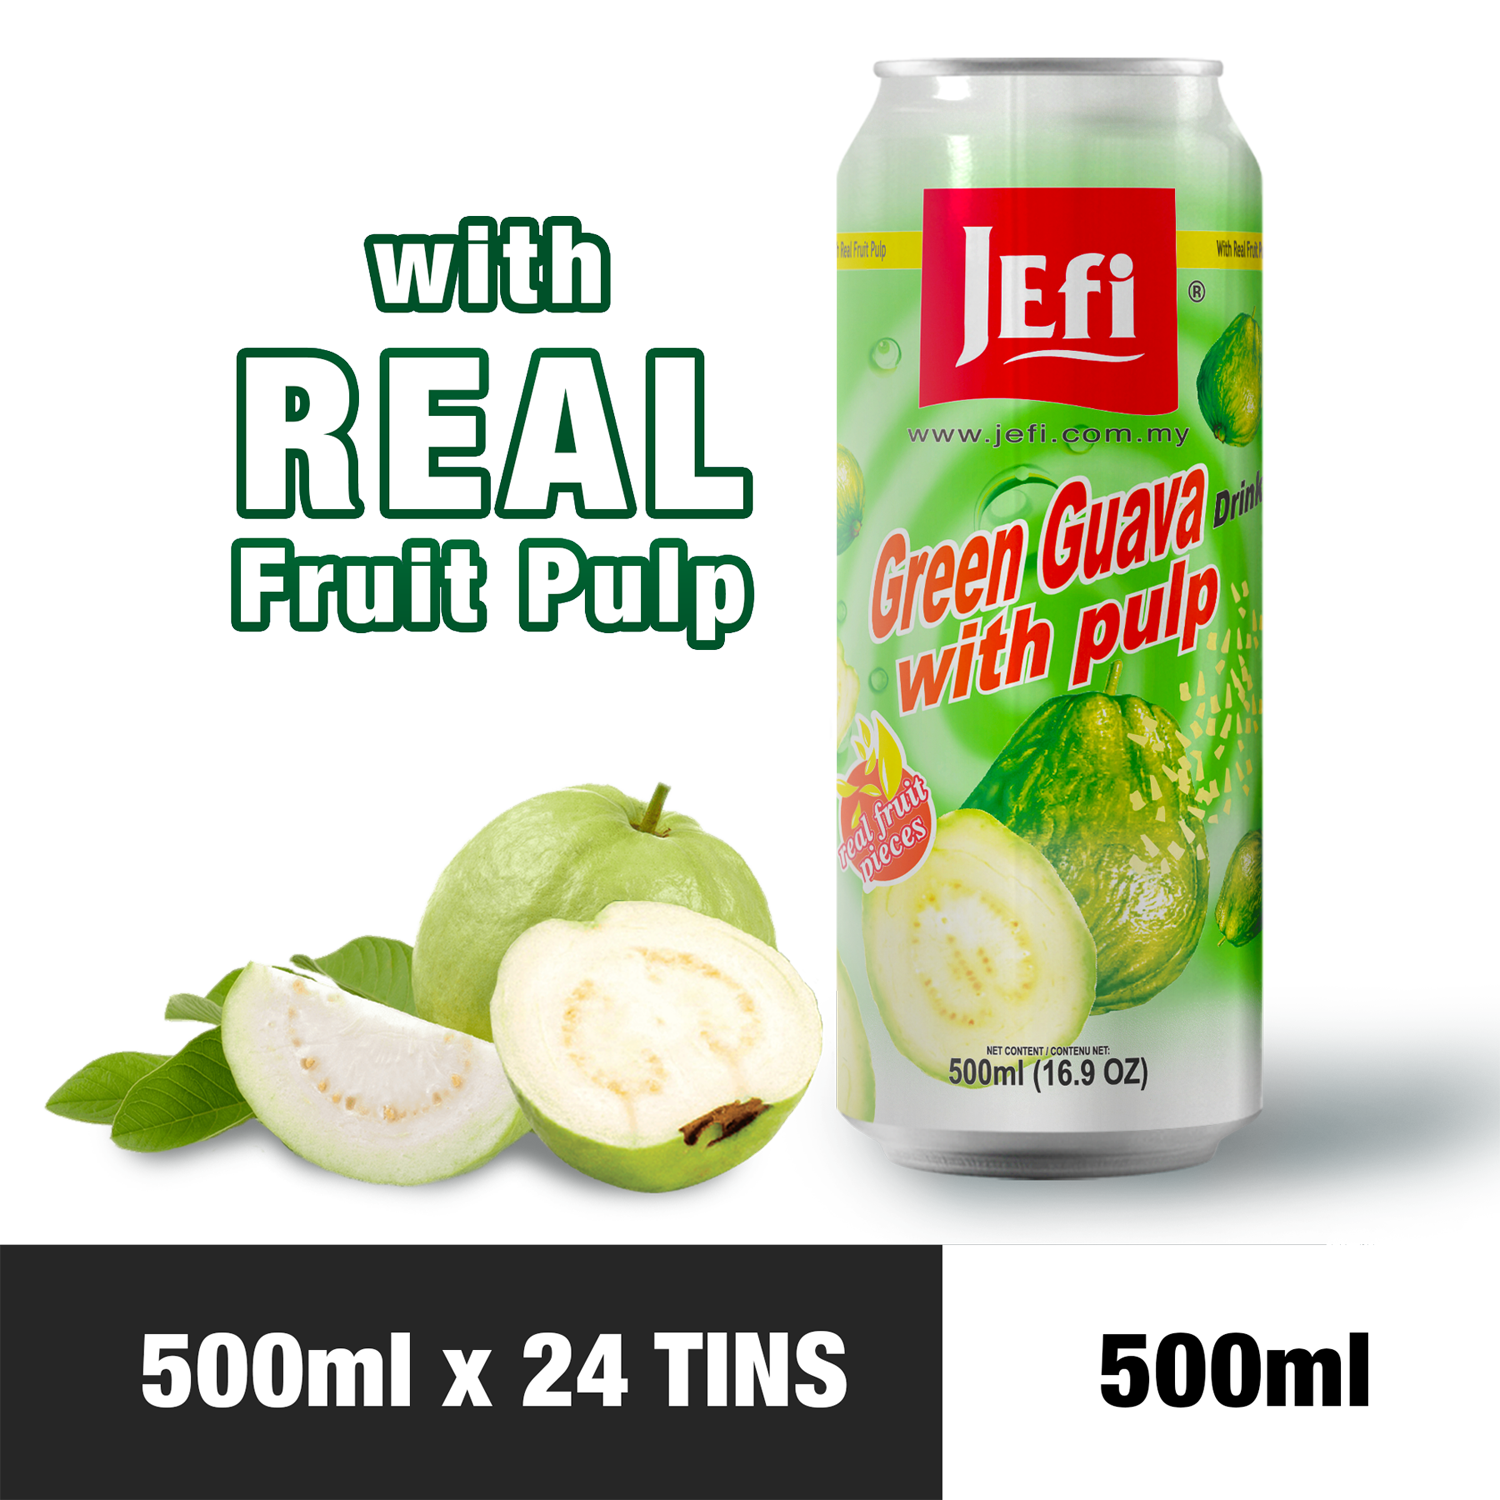 JEFI Green Guava Drink with Real Fruit Pulp (500ml x 24tins)